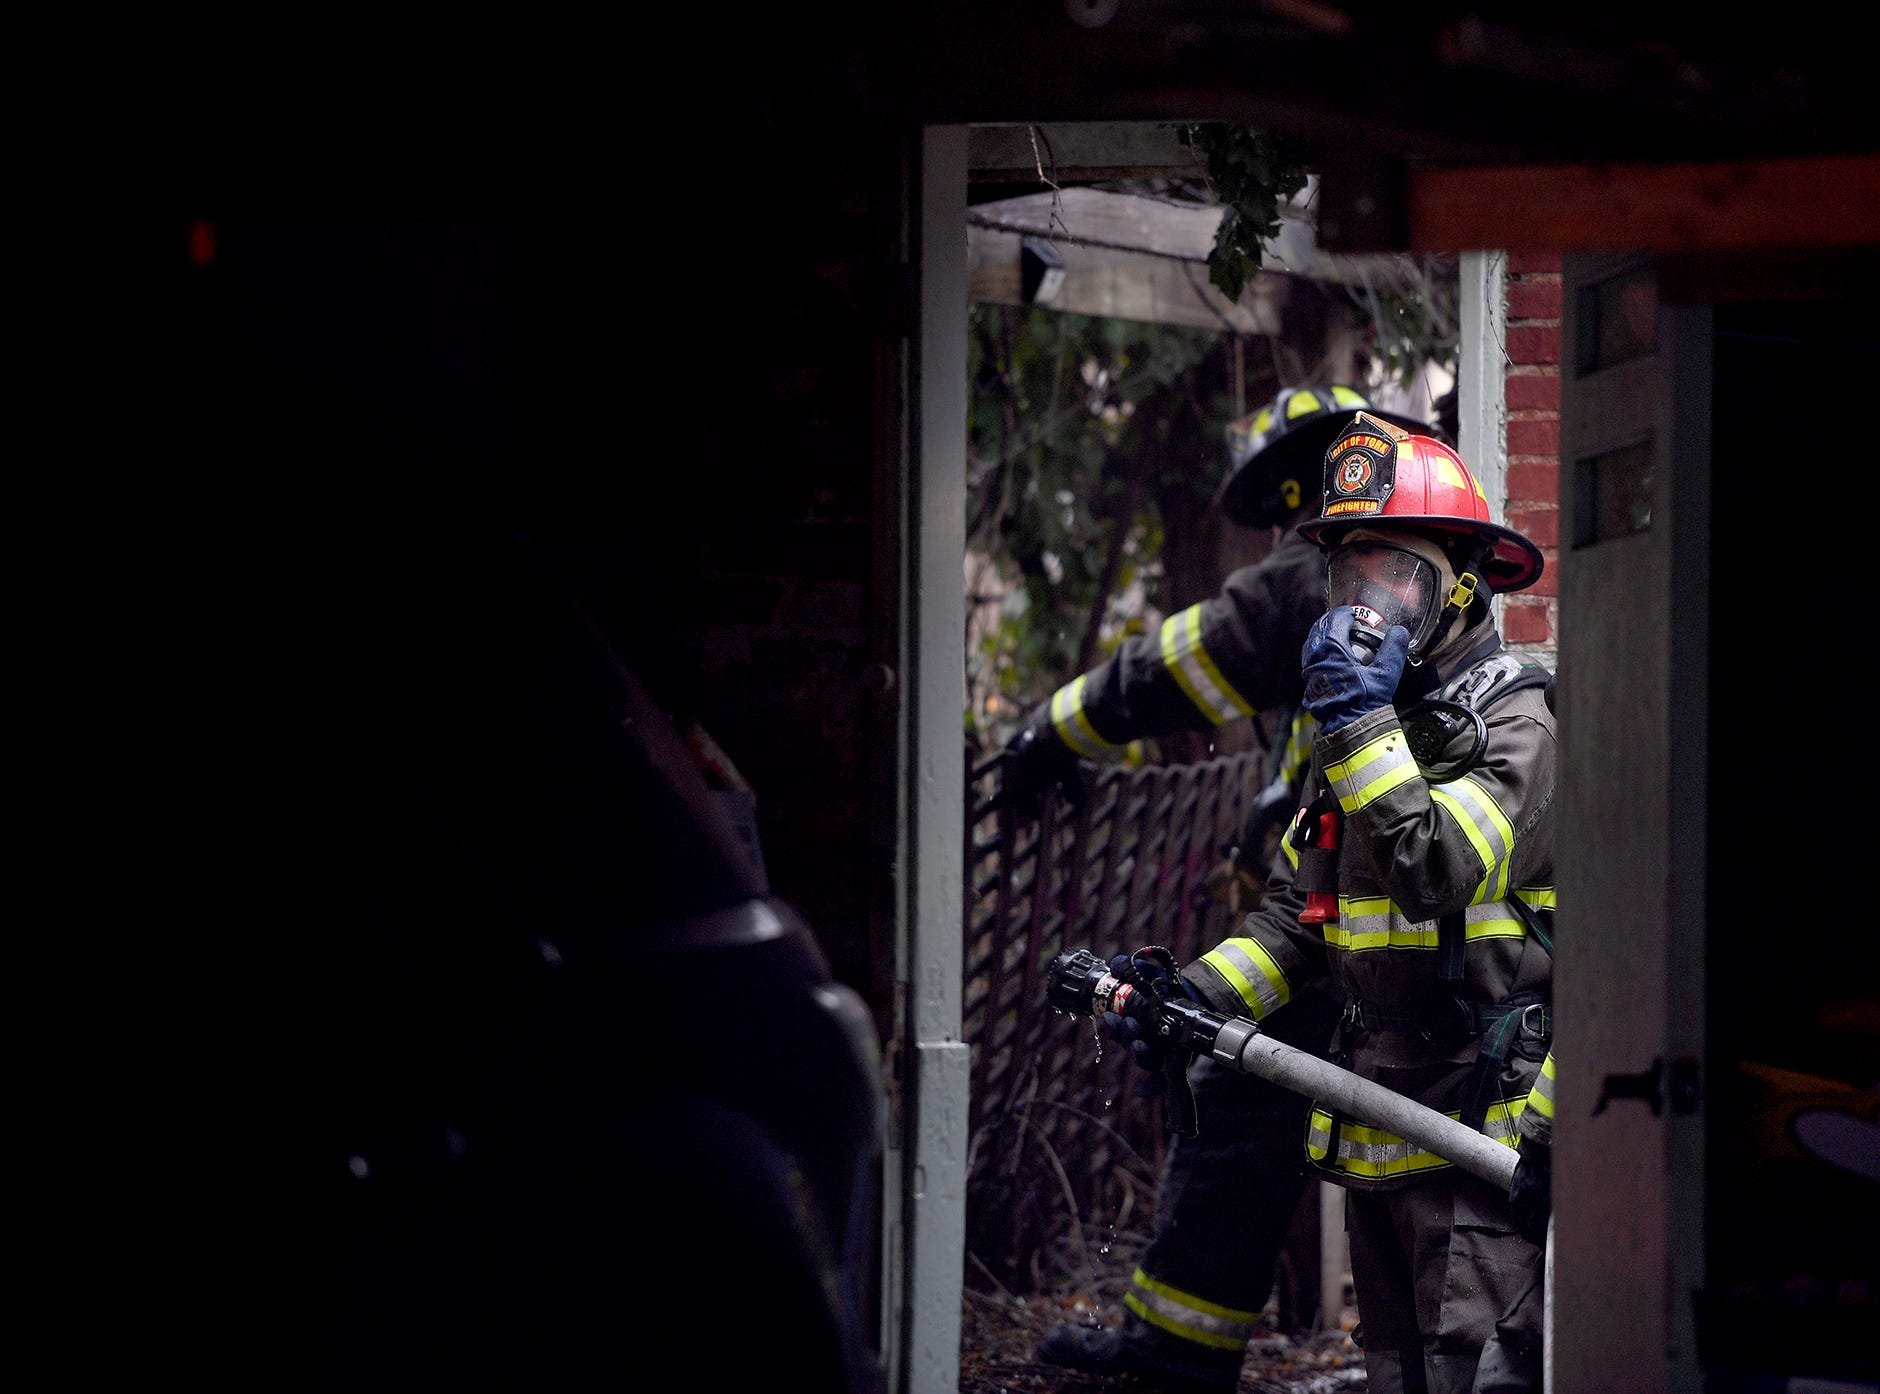 A firefighter adjusts his respirator while battling a stubborn blaze in a two-story garage in the 600 block of W. Philadelphia Street, Sunday, March 10, 2018.